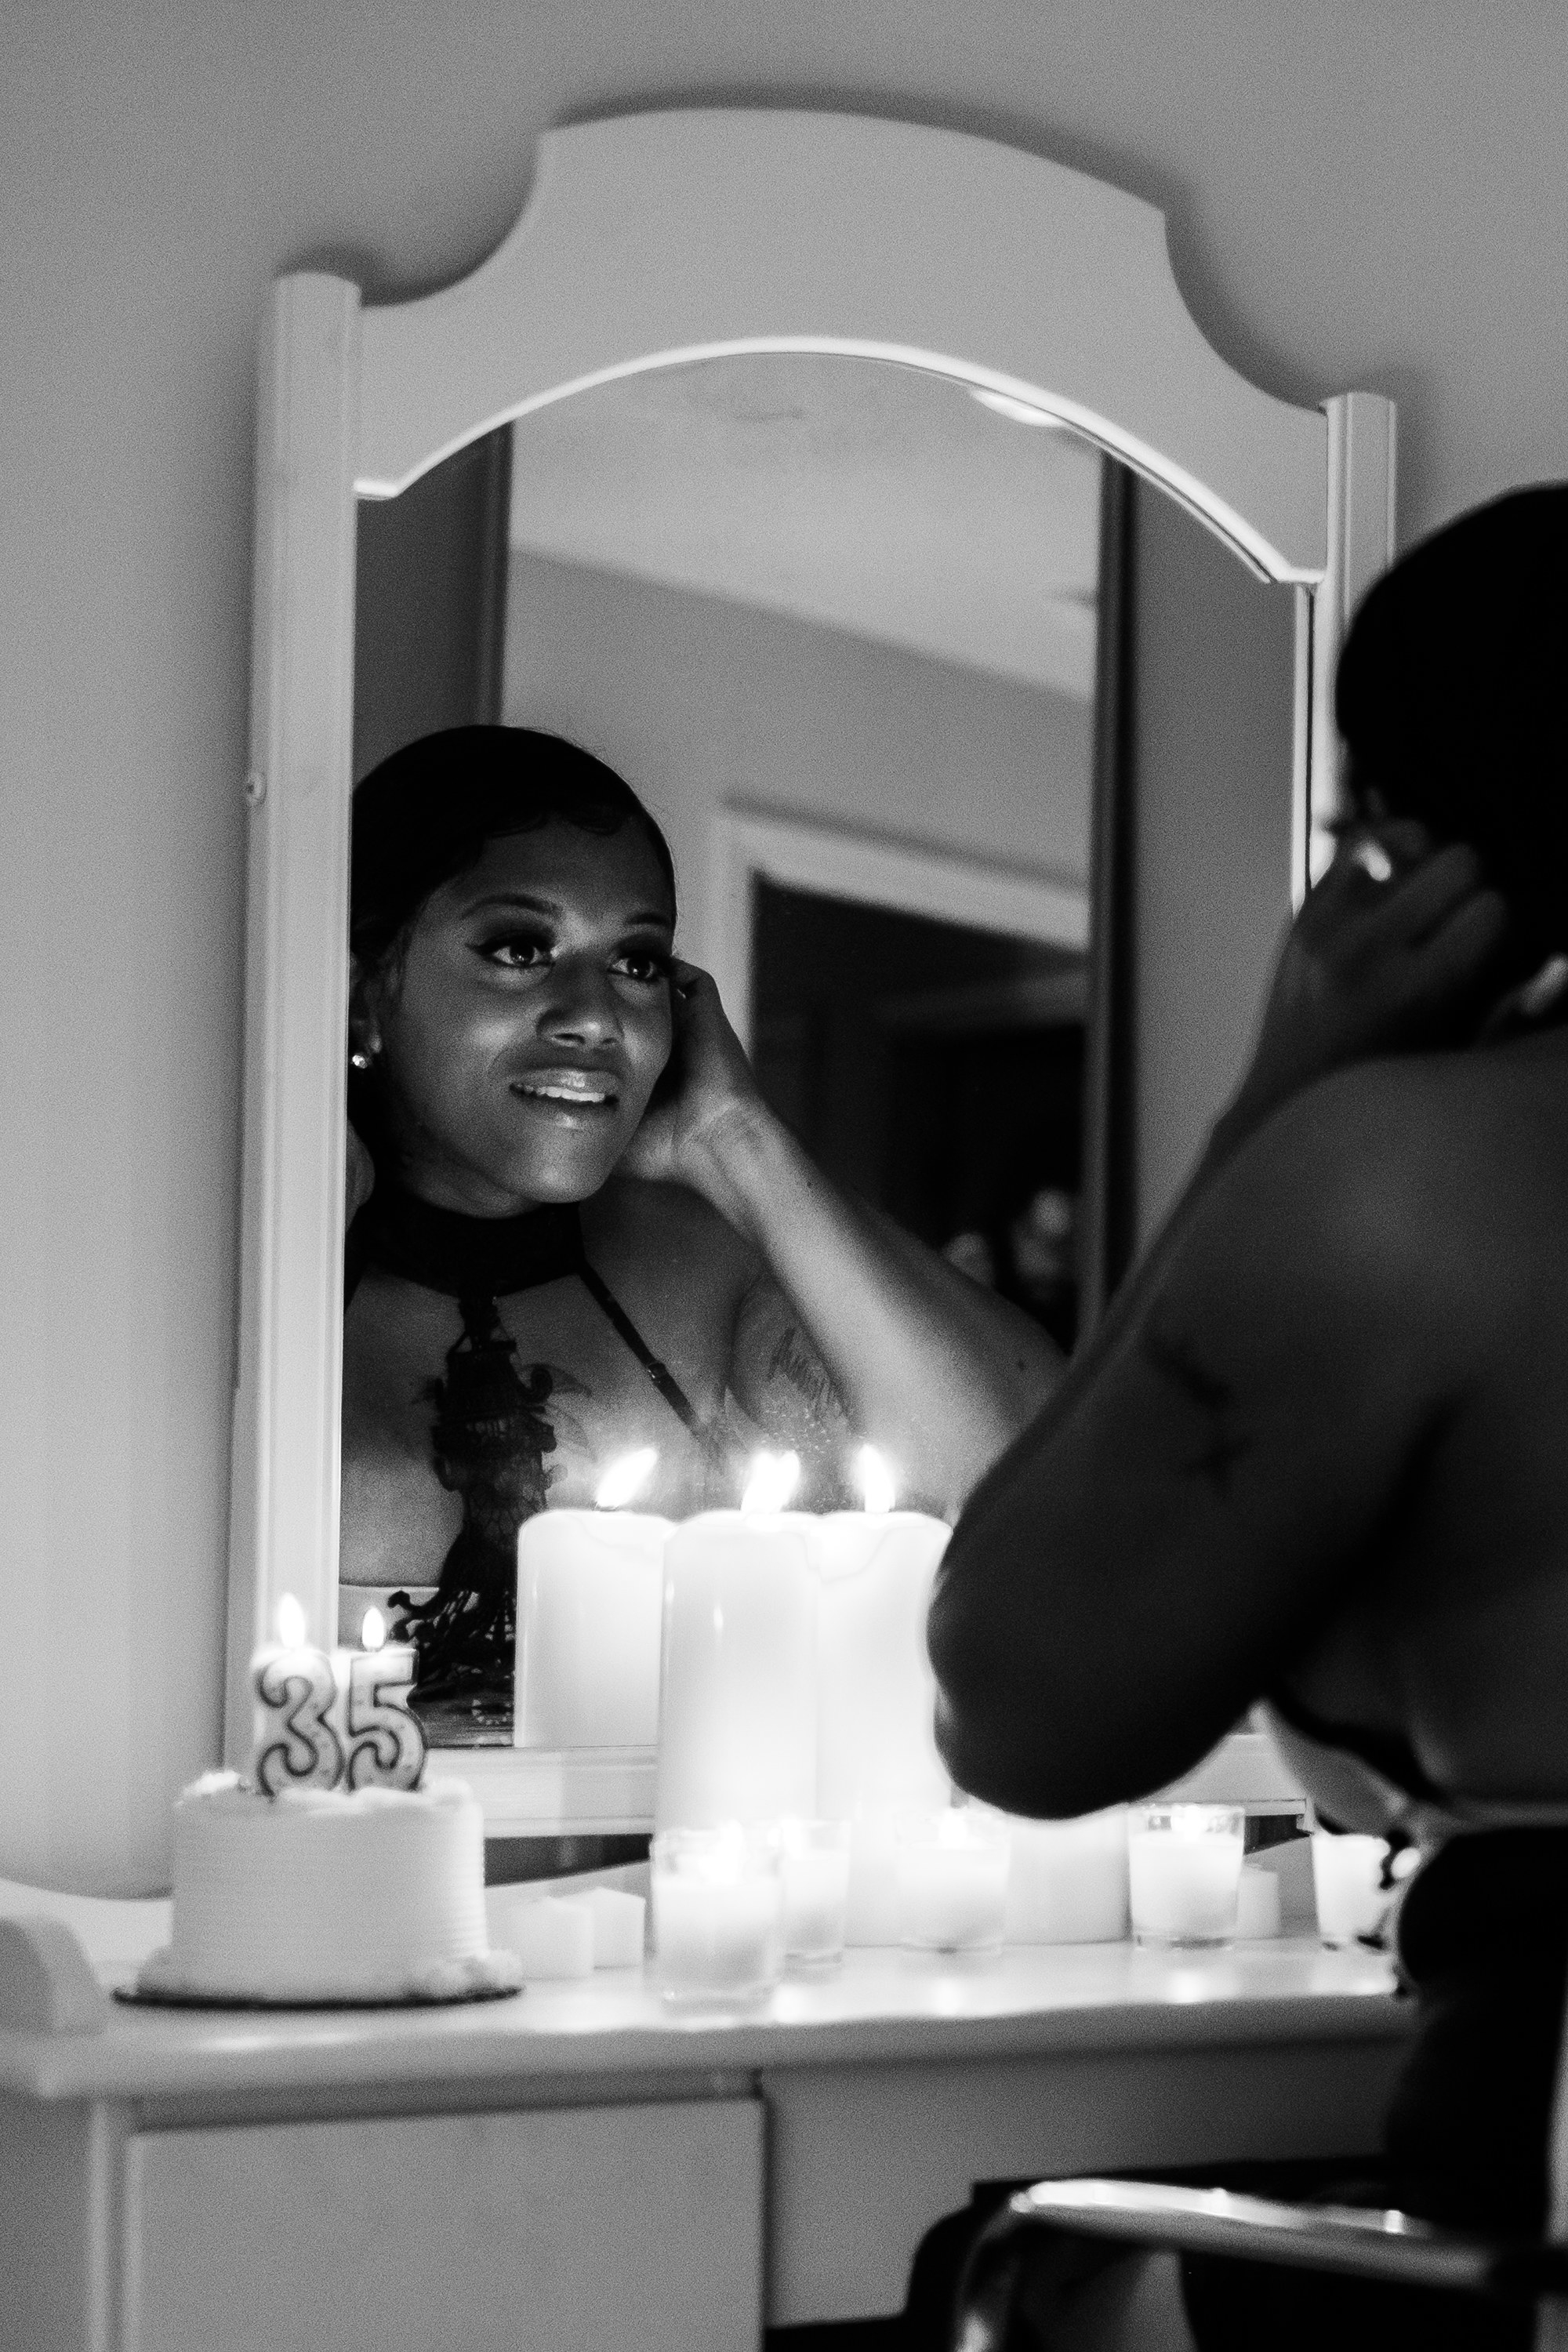 A black trans woman looks into the mirror and smiles candles are nearby